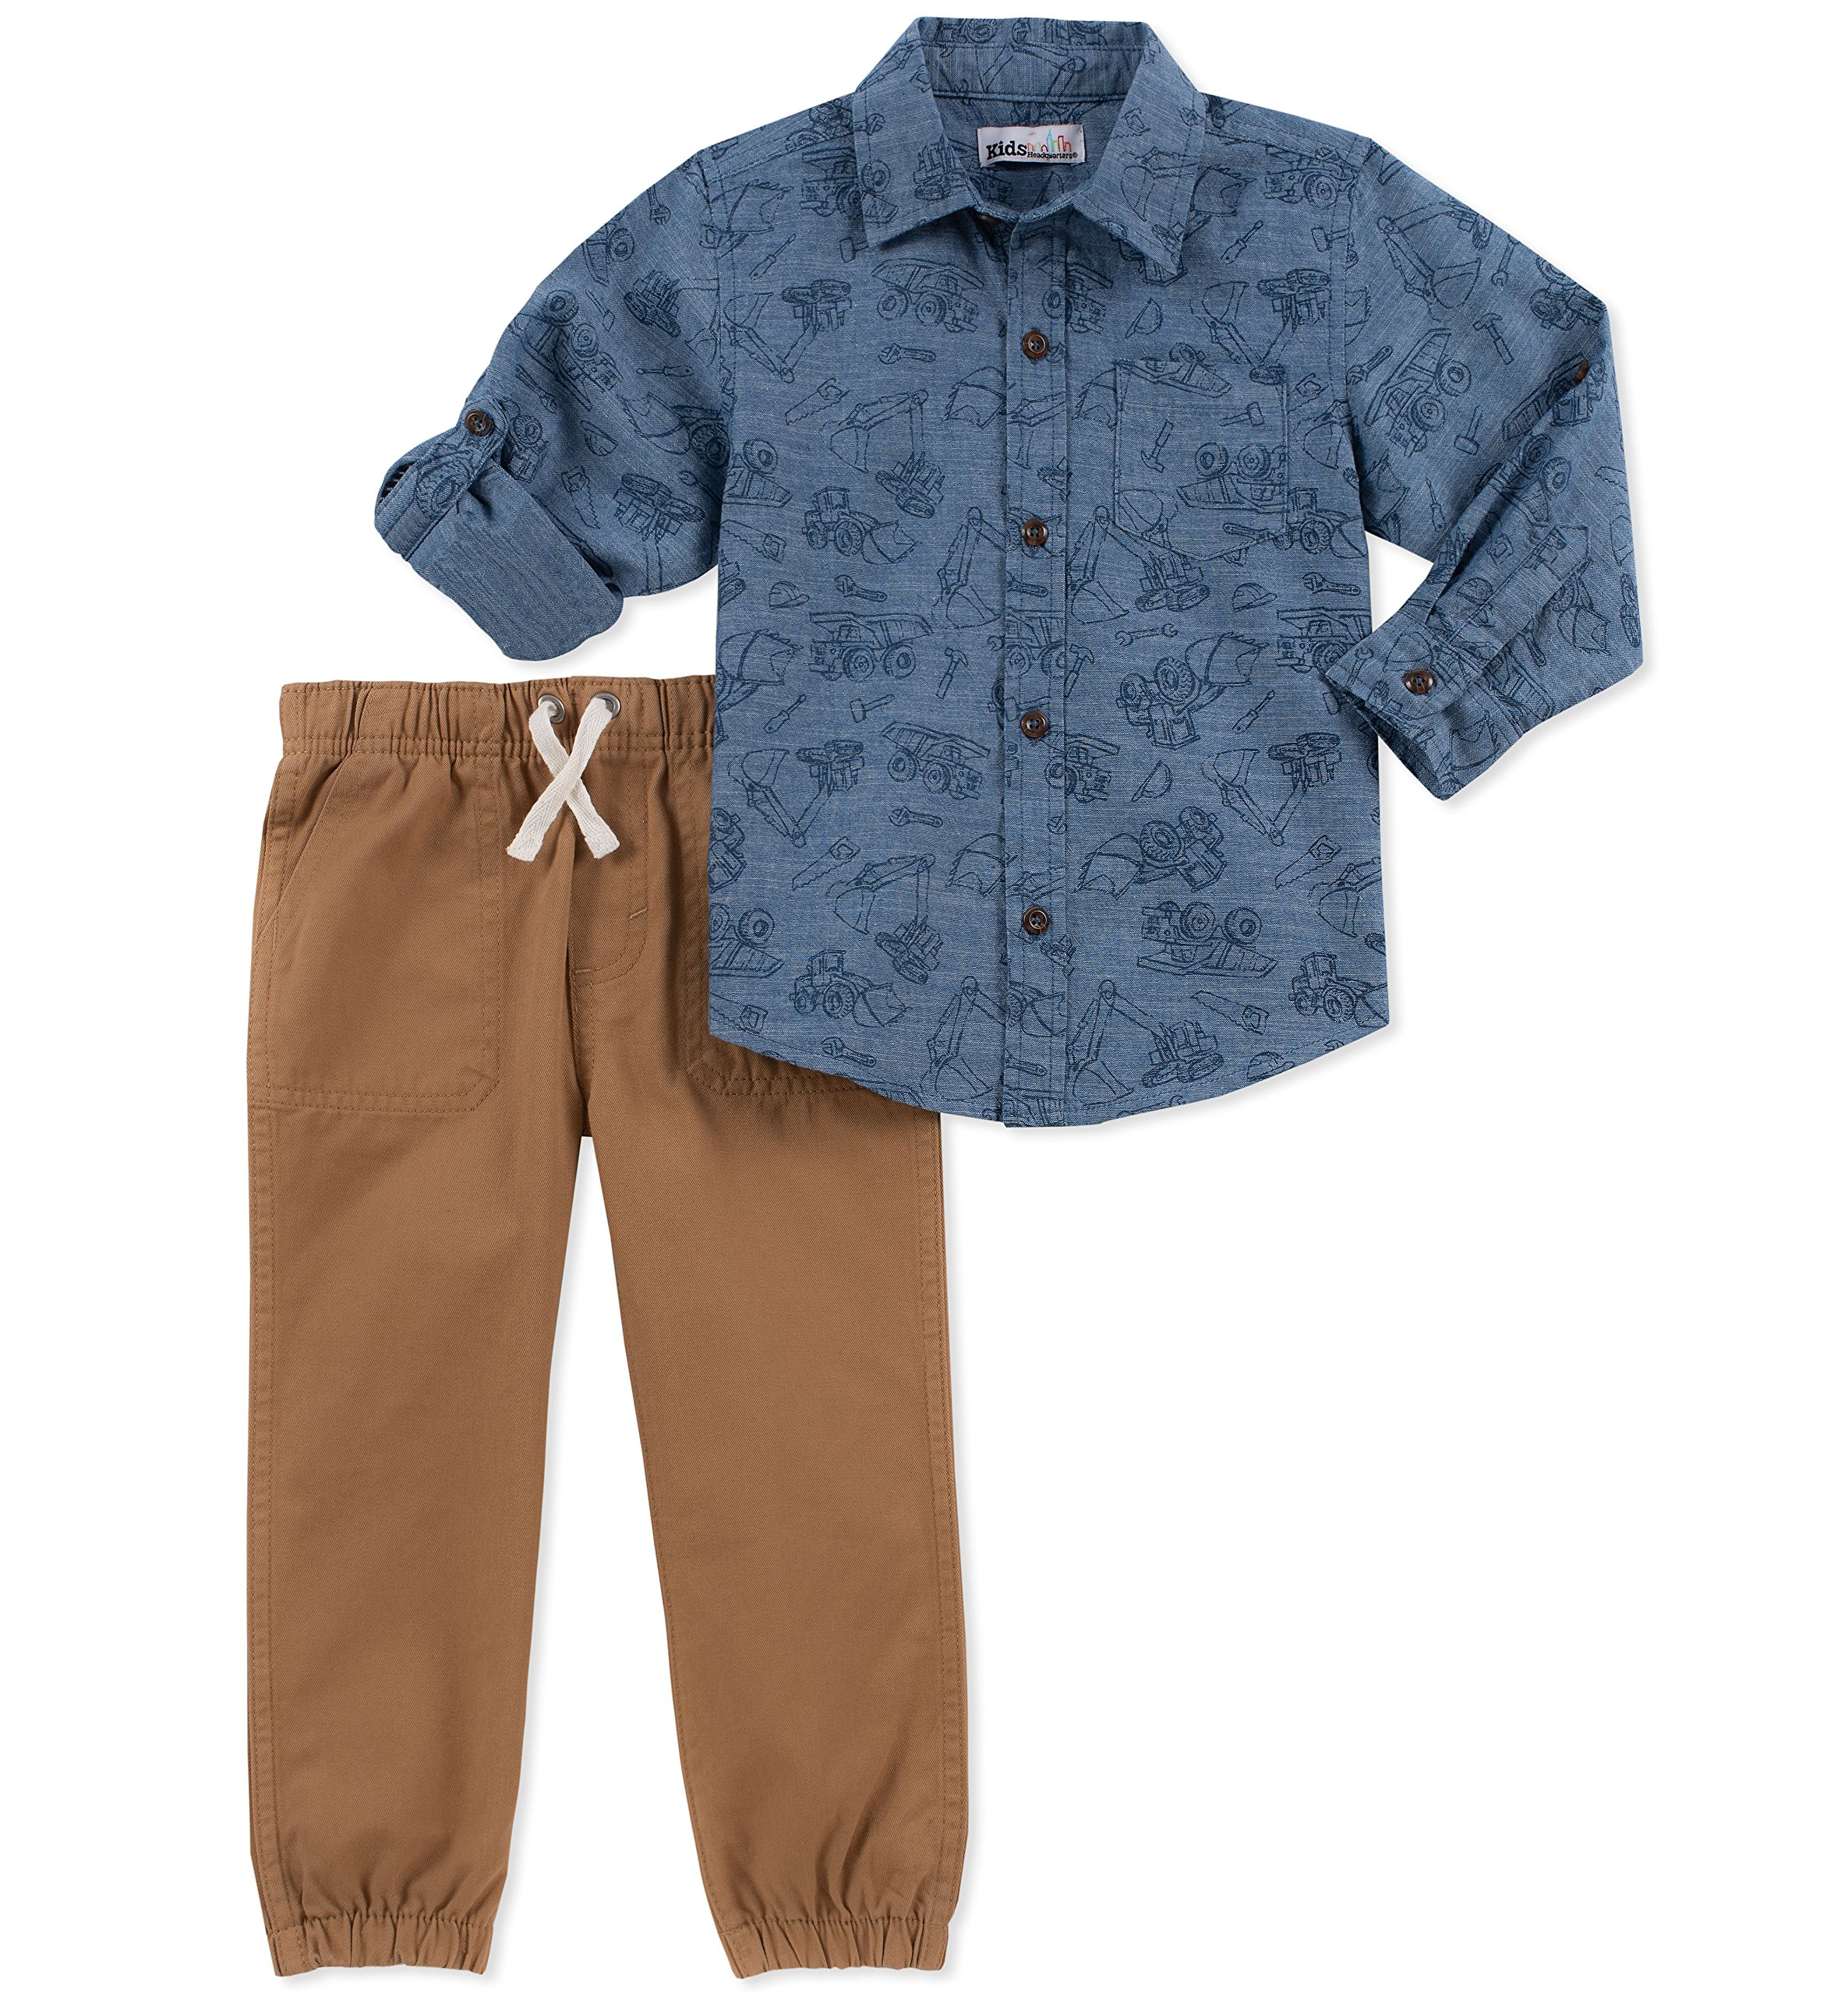 Kids Headquarters Baby Boys 2 Pieces Shirt Pants Set-Rolled Up Sleeves